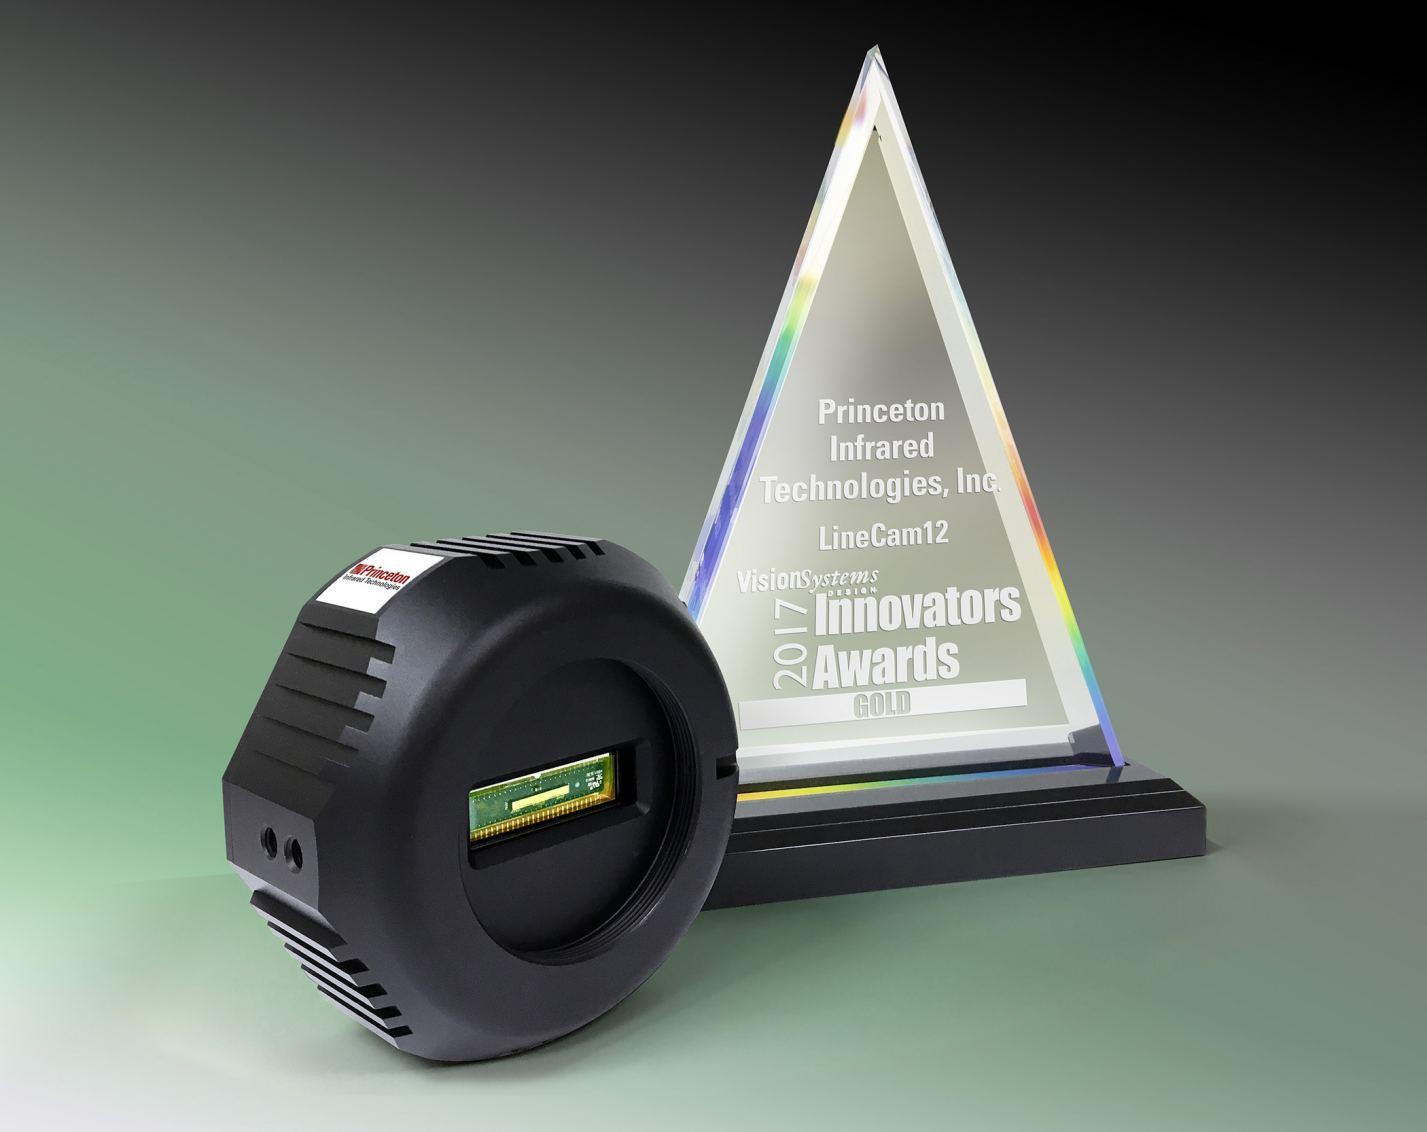 Princeton Infrared Technologies Receives Vision Systems Design's Gold Level Innovators Award 2017